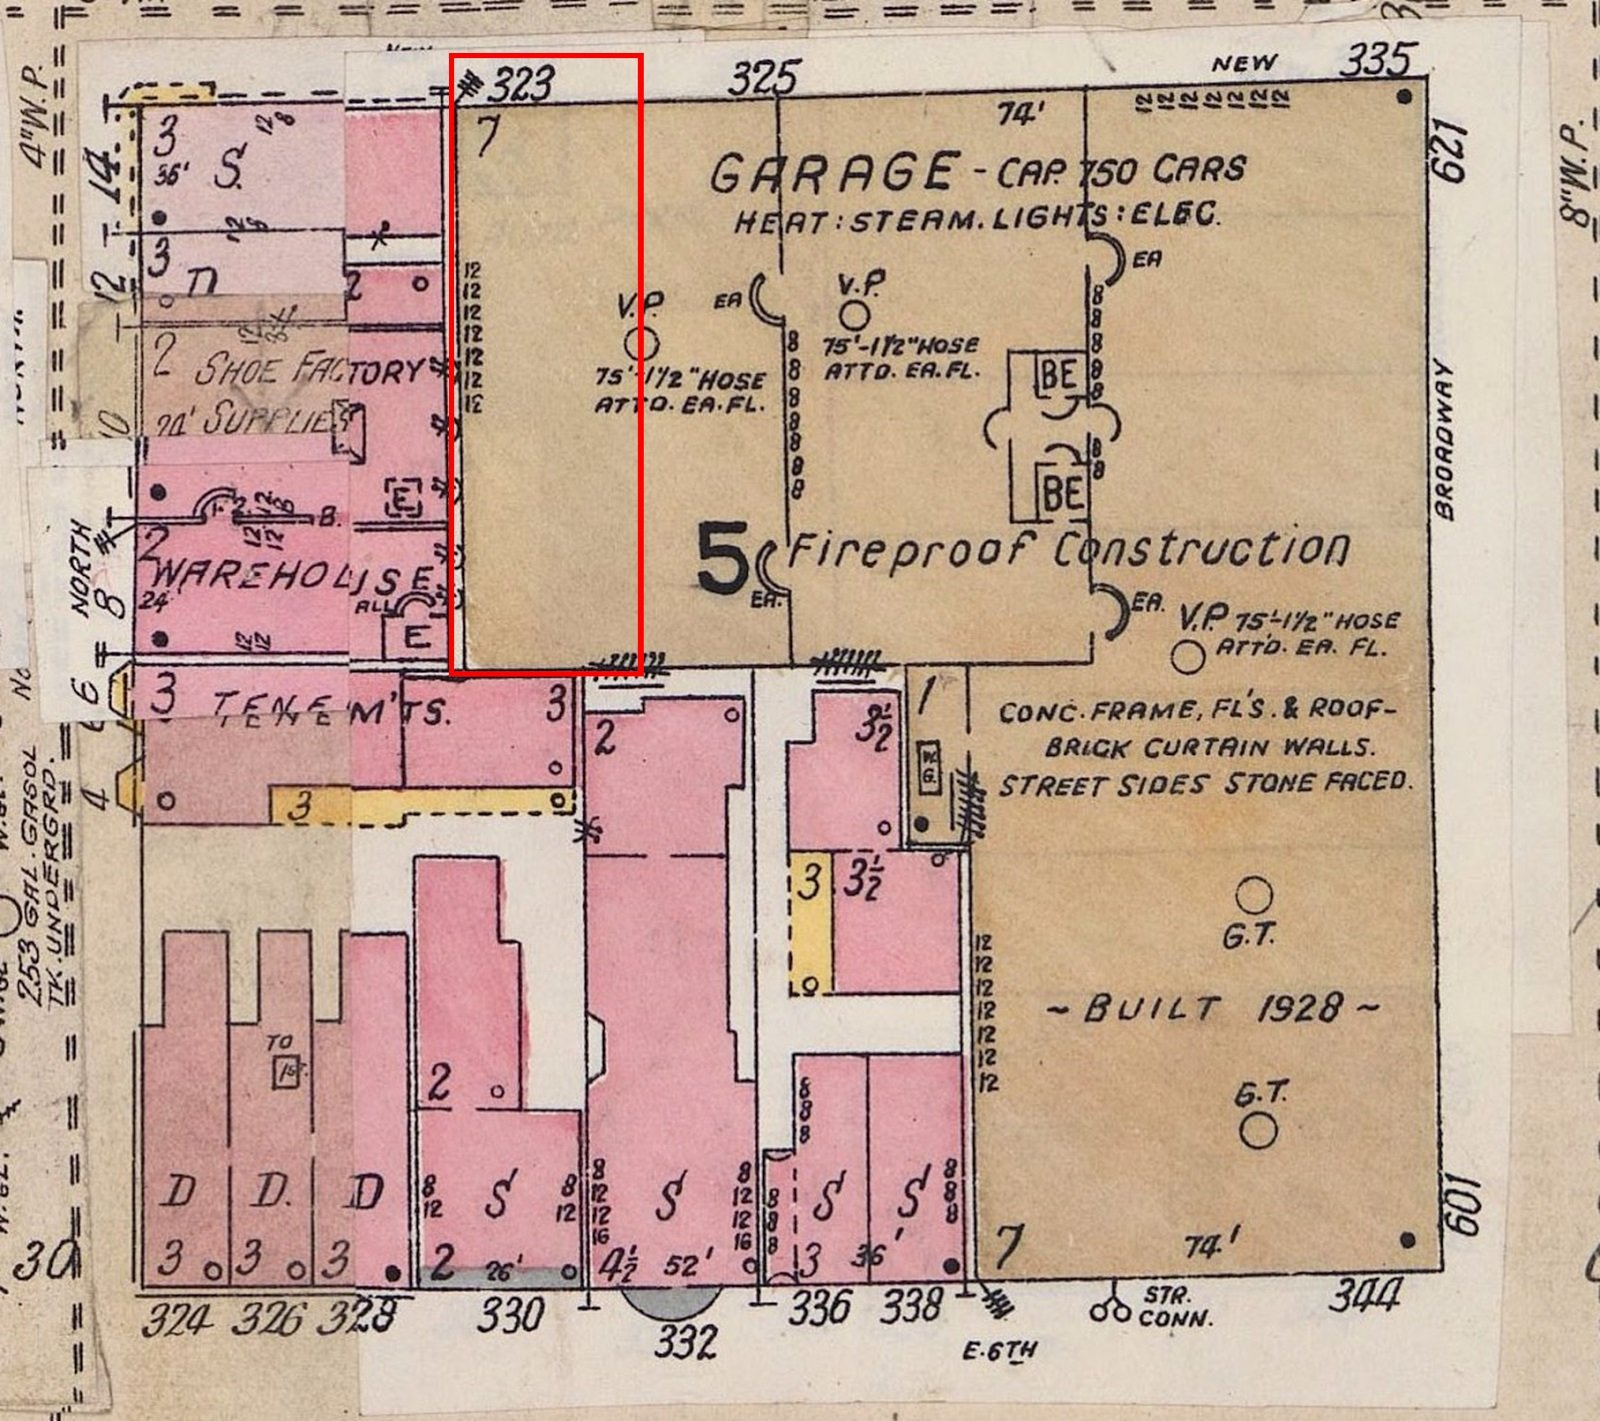 1904-1930 Sanborn Insurance Map - Former location of Henry Boyd's house outlined in red